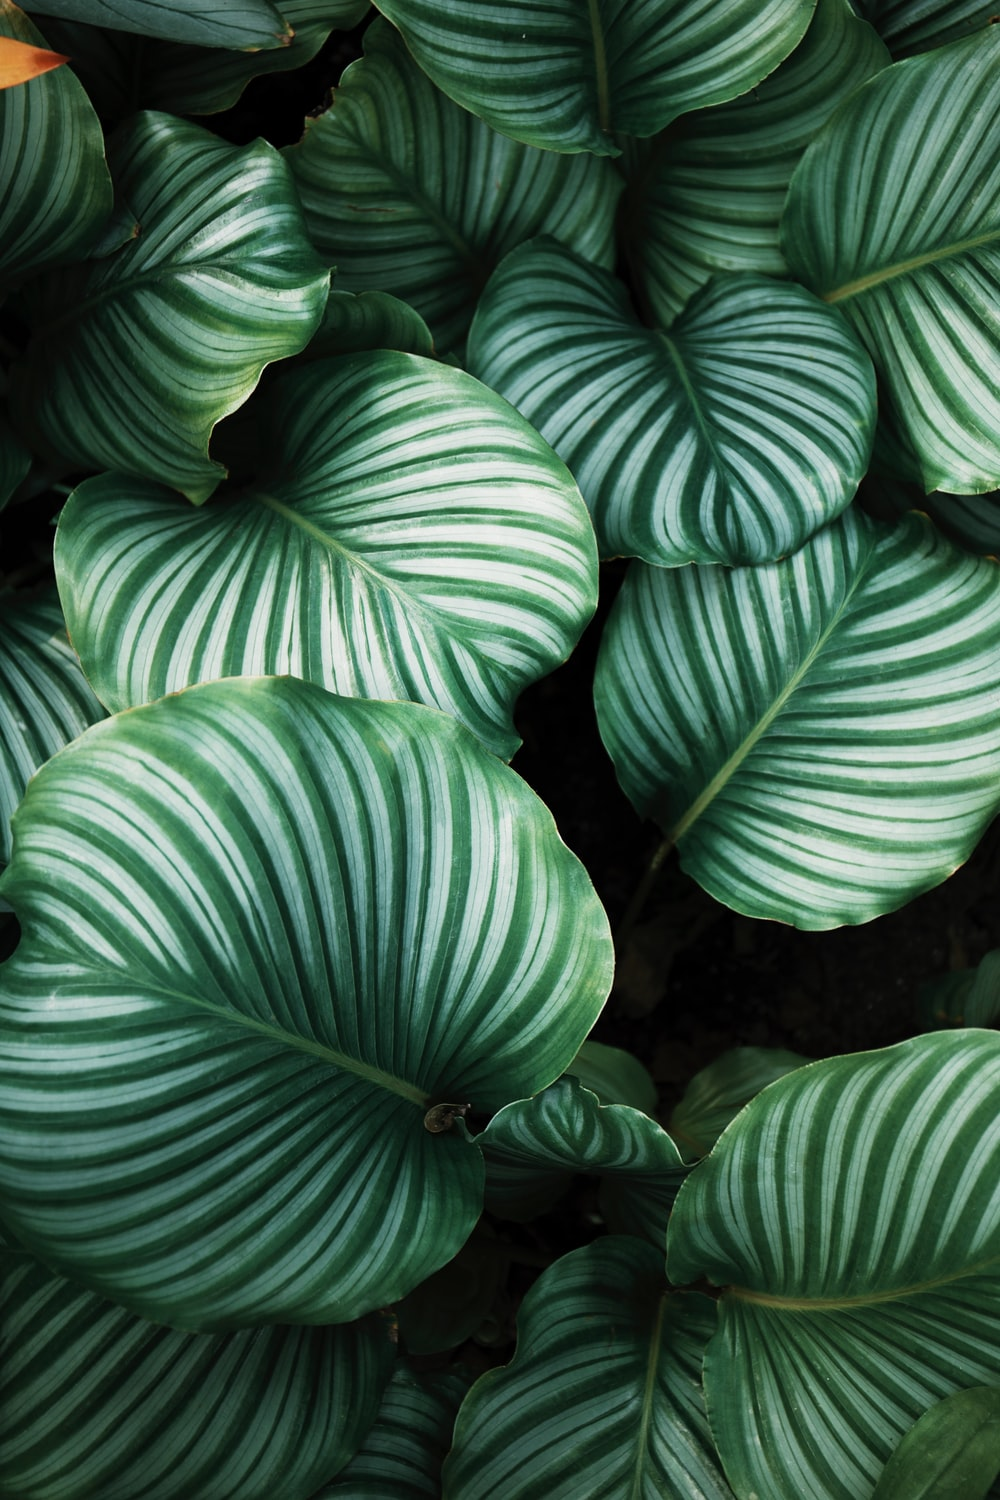 Tropical Leaf Pictures Download Free Images On Unsplash Here you can find the best tropical pictures wallpapers uploaded by our community. tropical leaf pictures download free